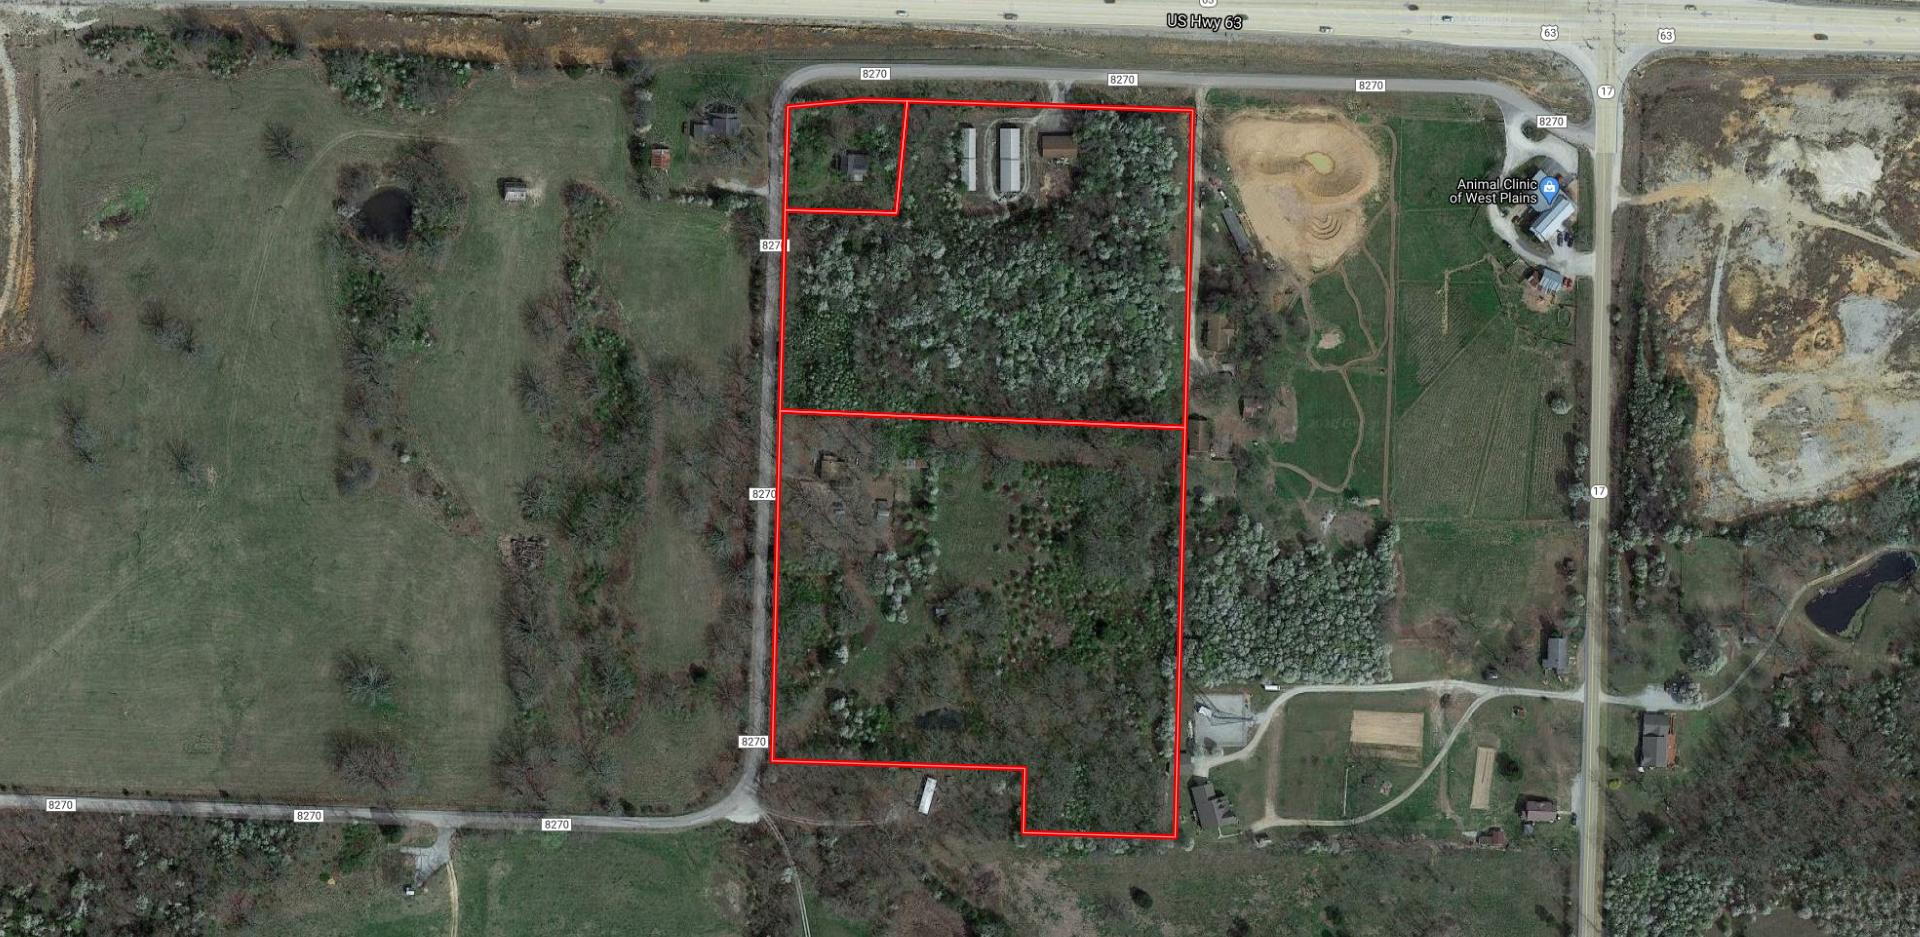 63 South Highway 63 South West Plains, MO 65775